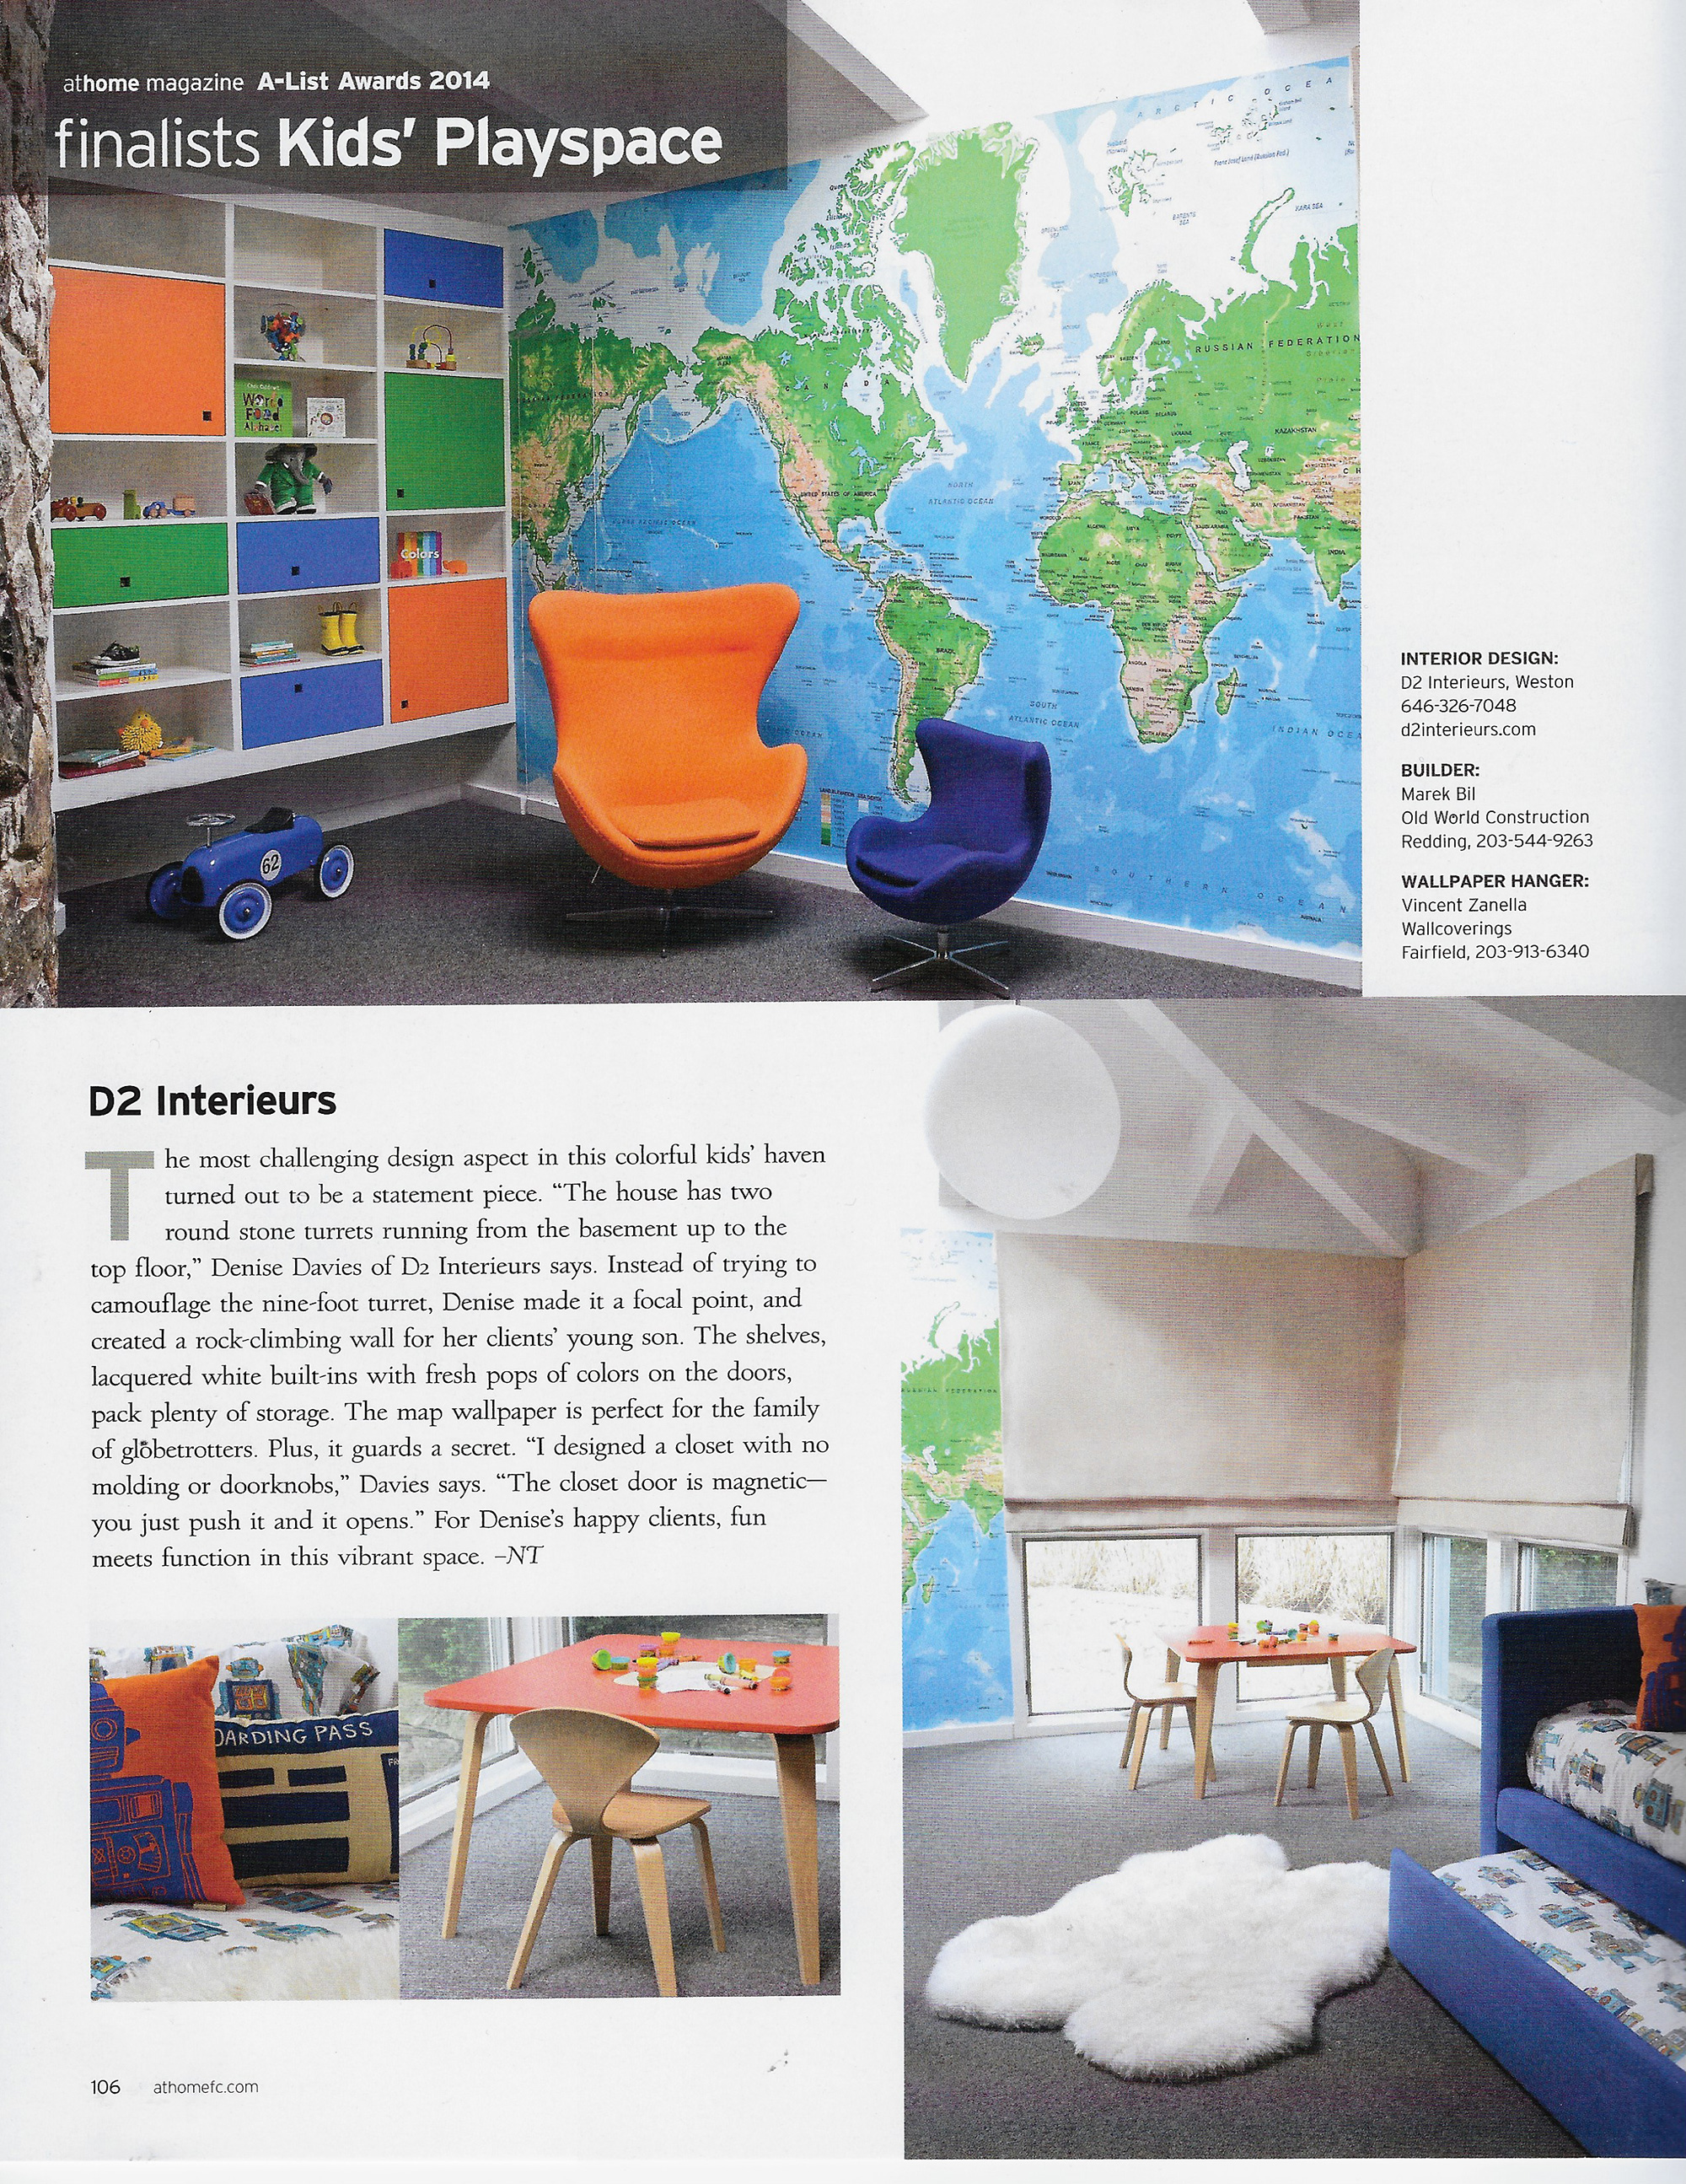 at-home-2014-finalist-a-list-awards-kids-playspace